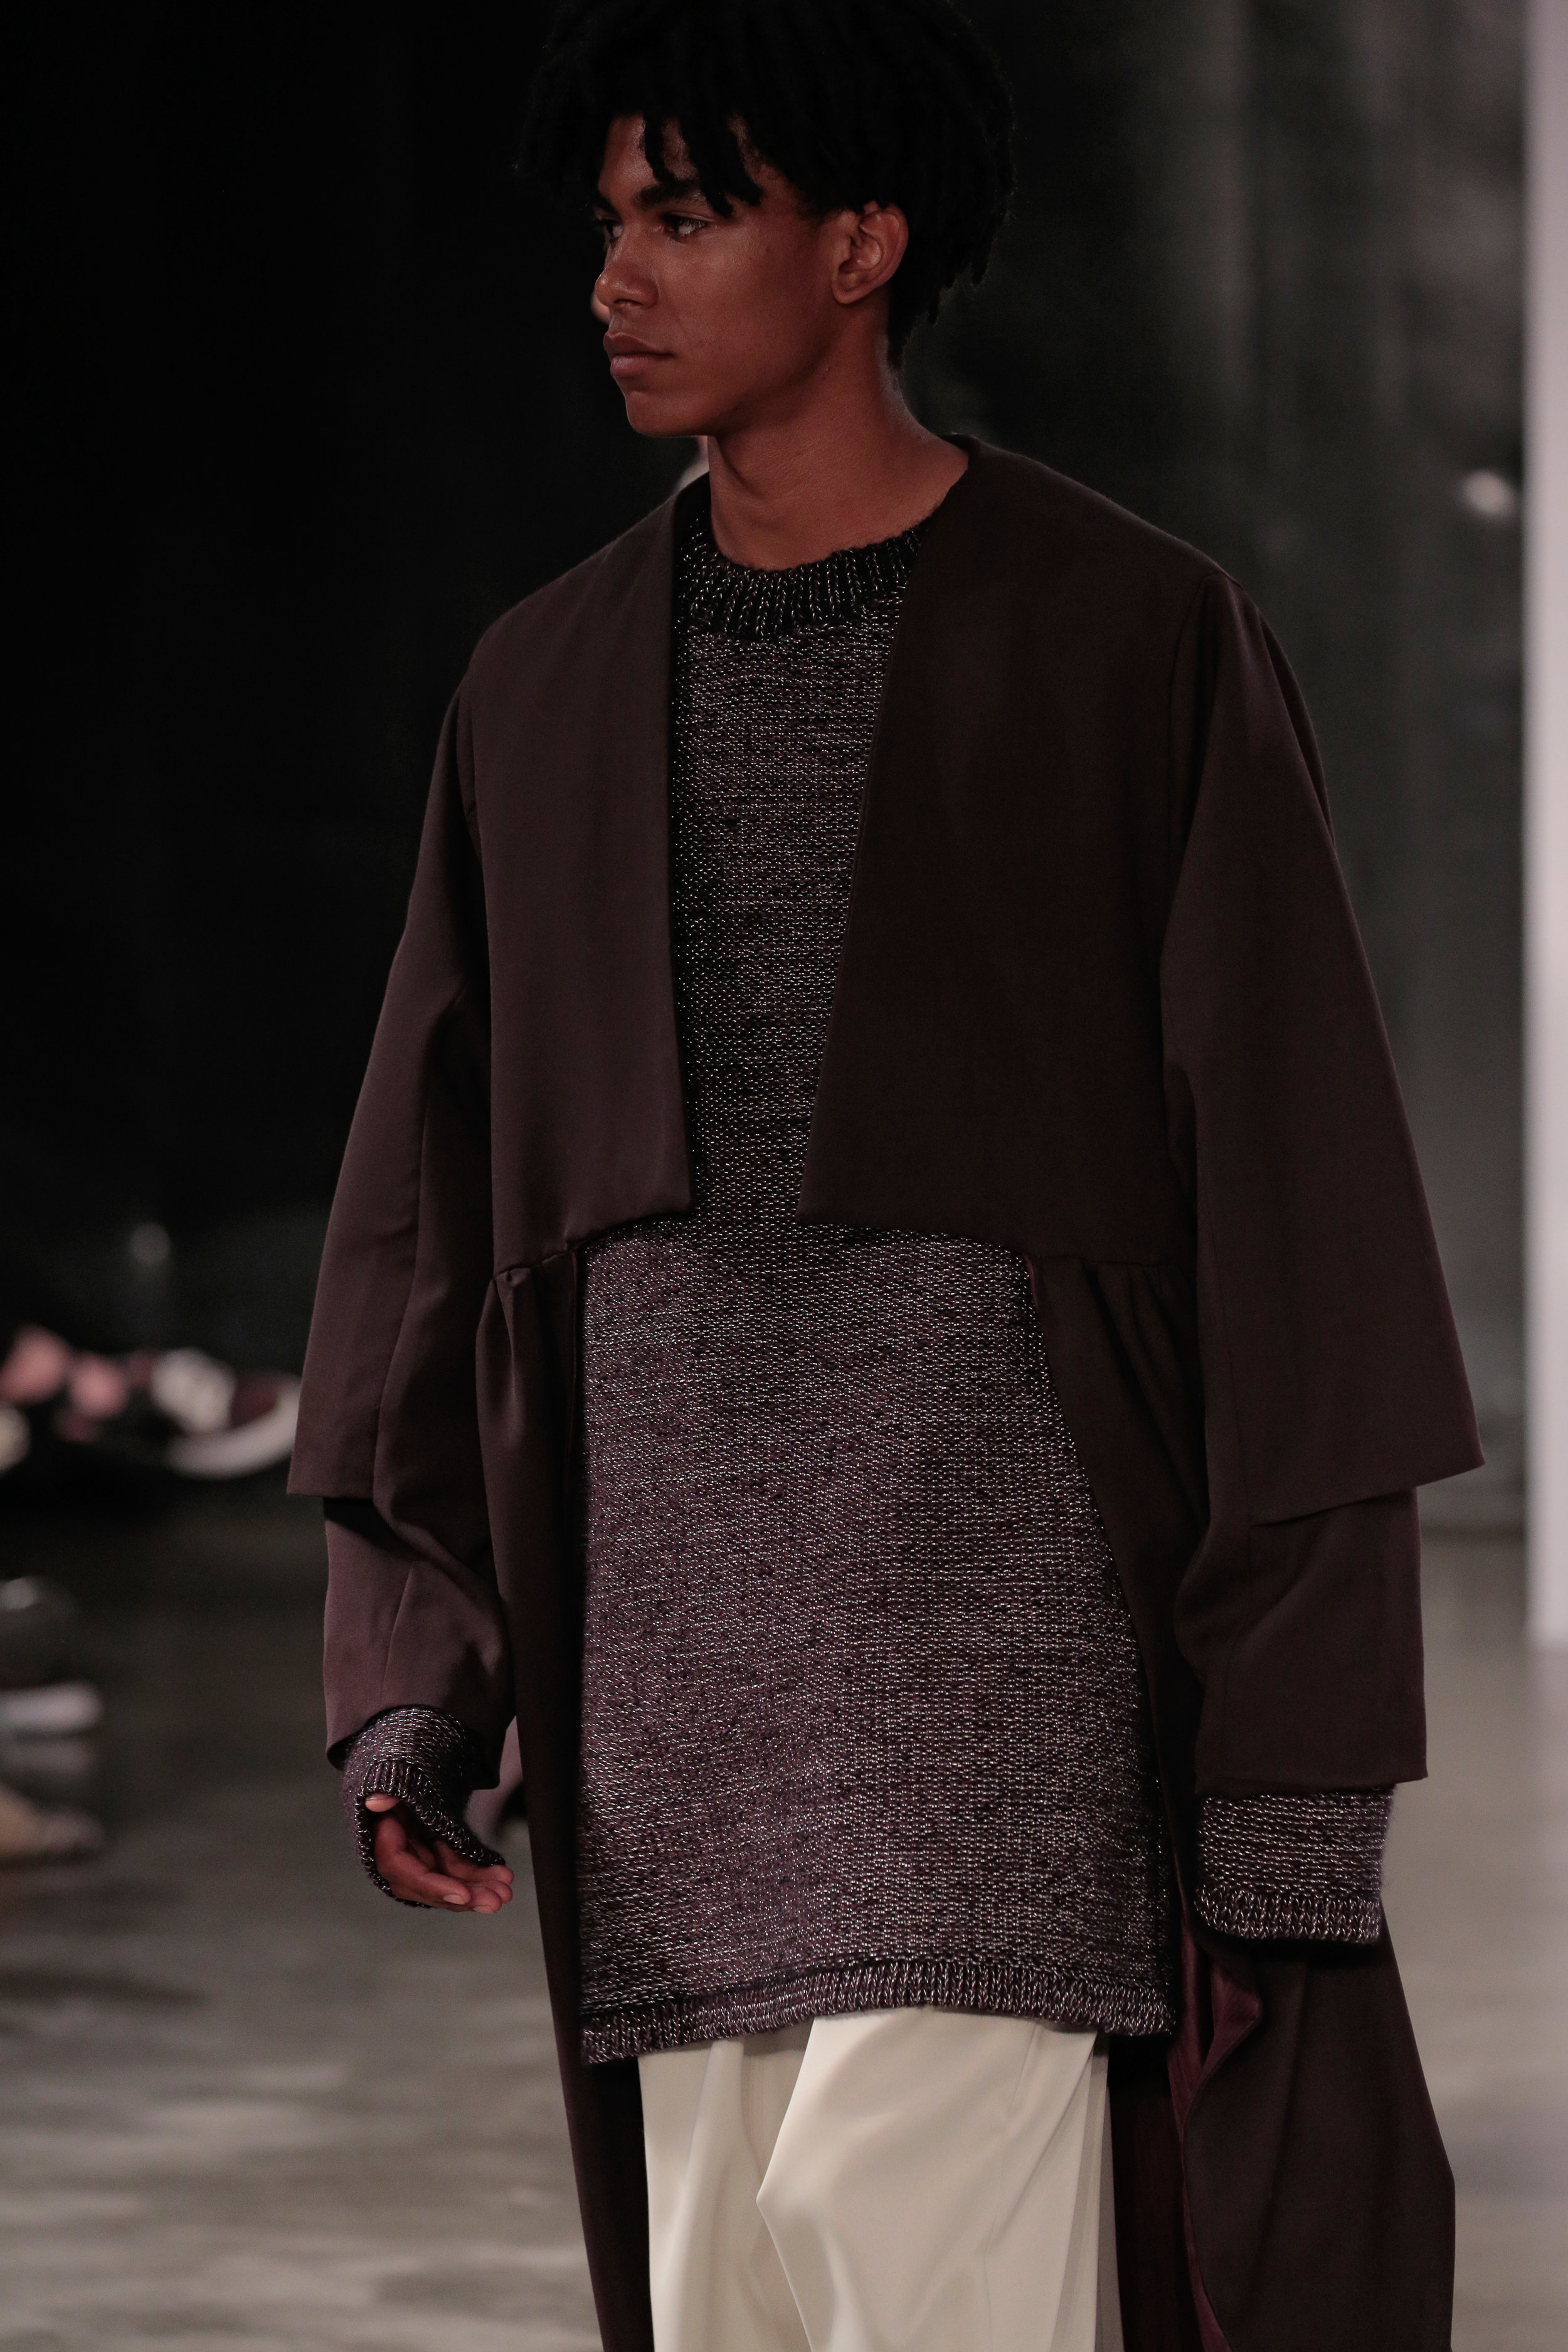 Graduation Fashion Show    Runway photographs in high resolution by Randy Brooke, GettyImages